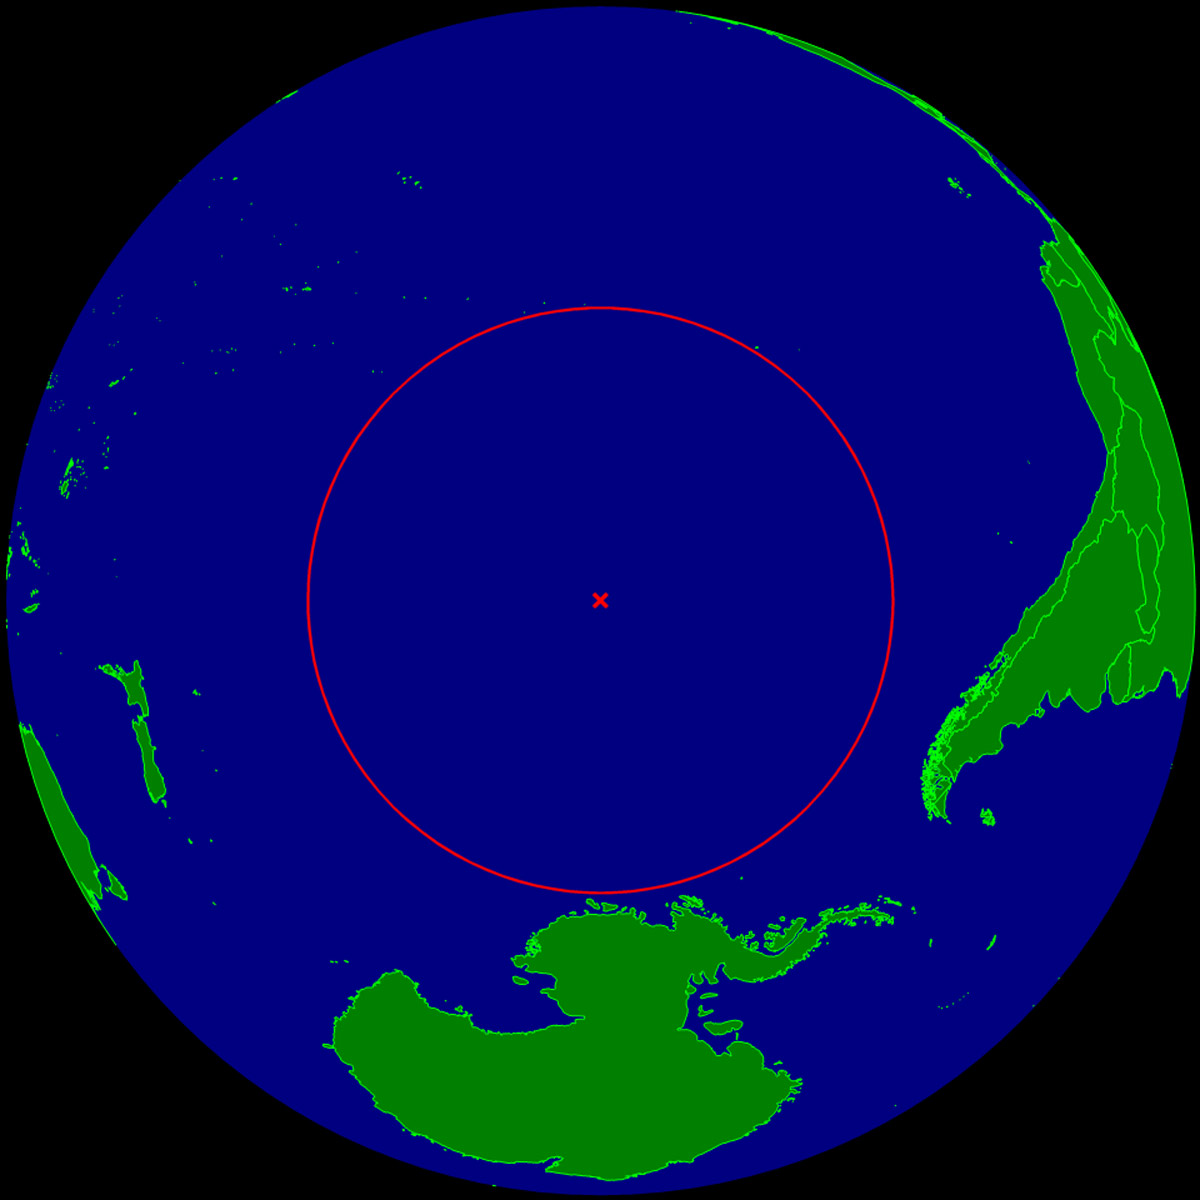 Pacific pole of inaccessibility